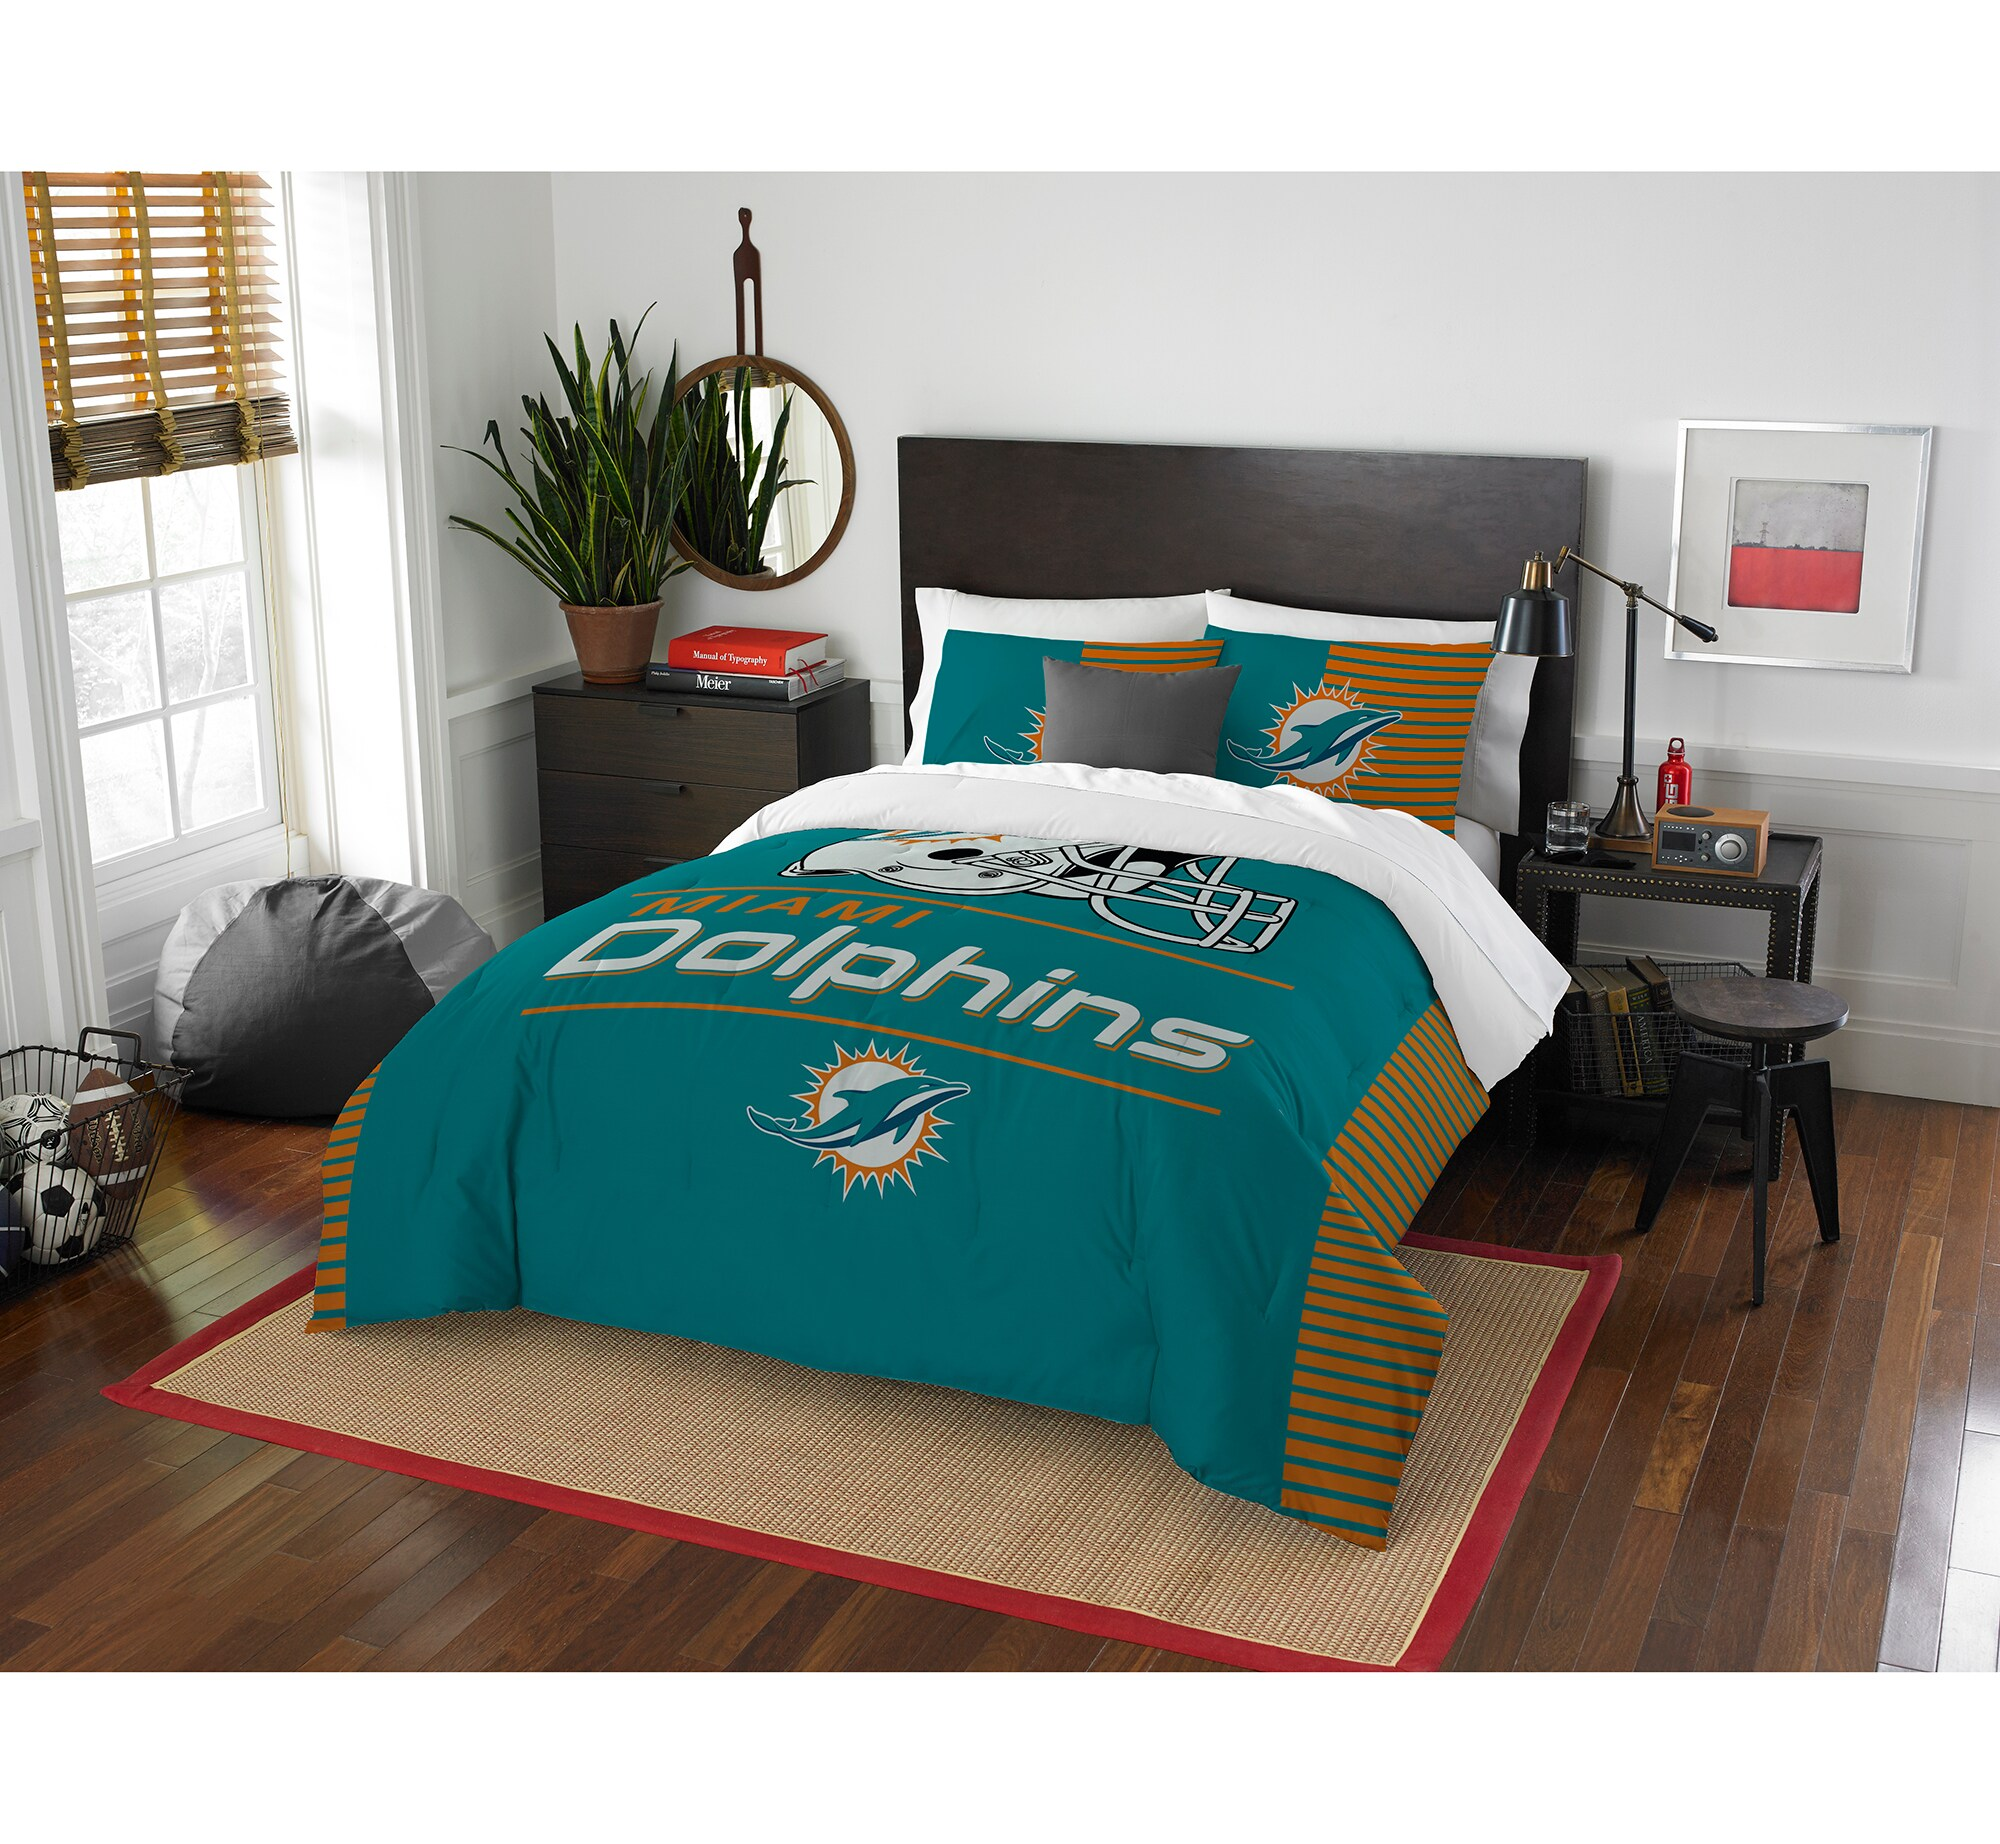 Miami Dolphins The Northwest Company NFL Draft Full/Queen Comforter Set